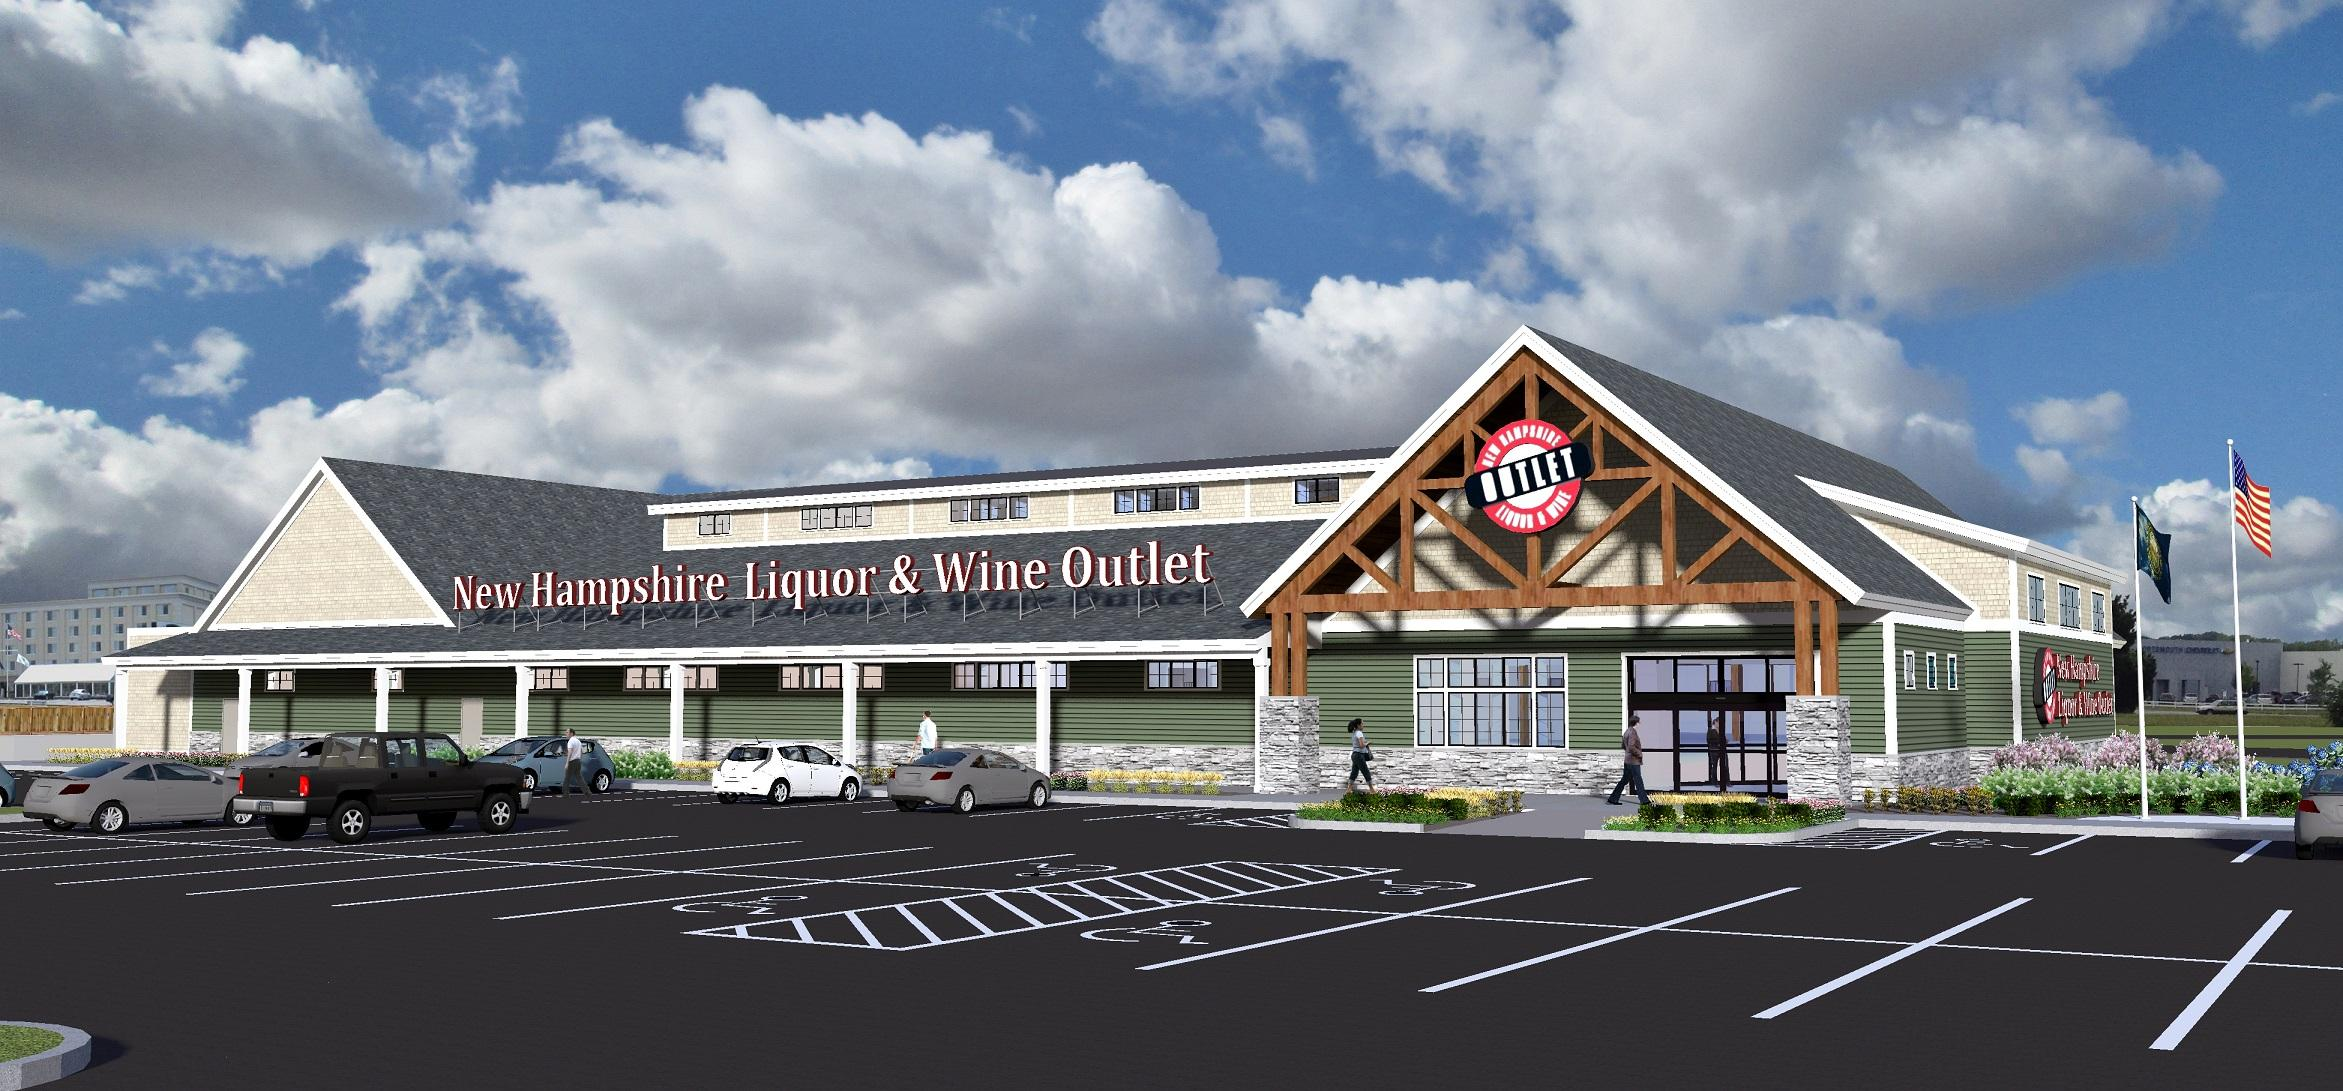 State liquor store in portsmouth will double in size new for New construction in nh